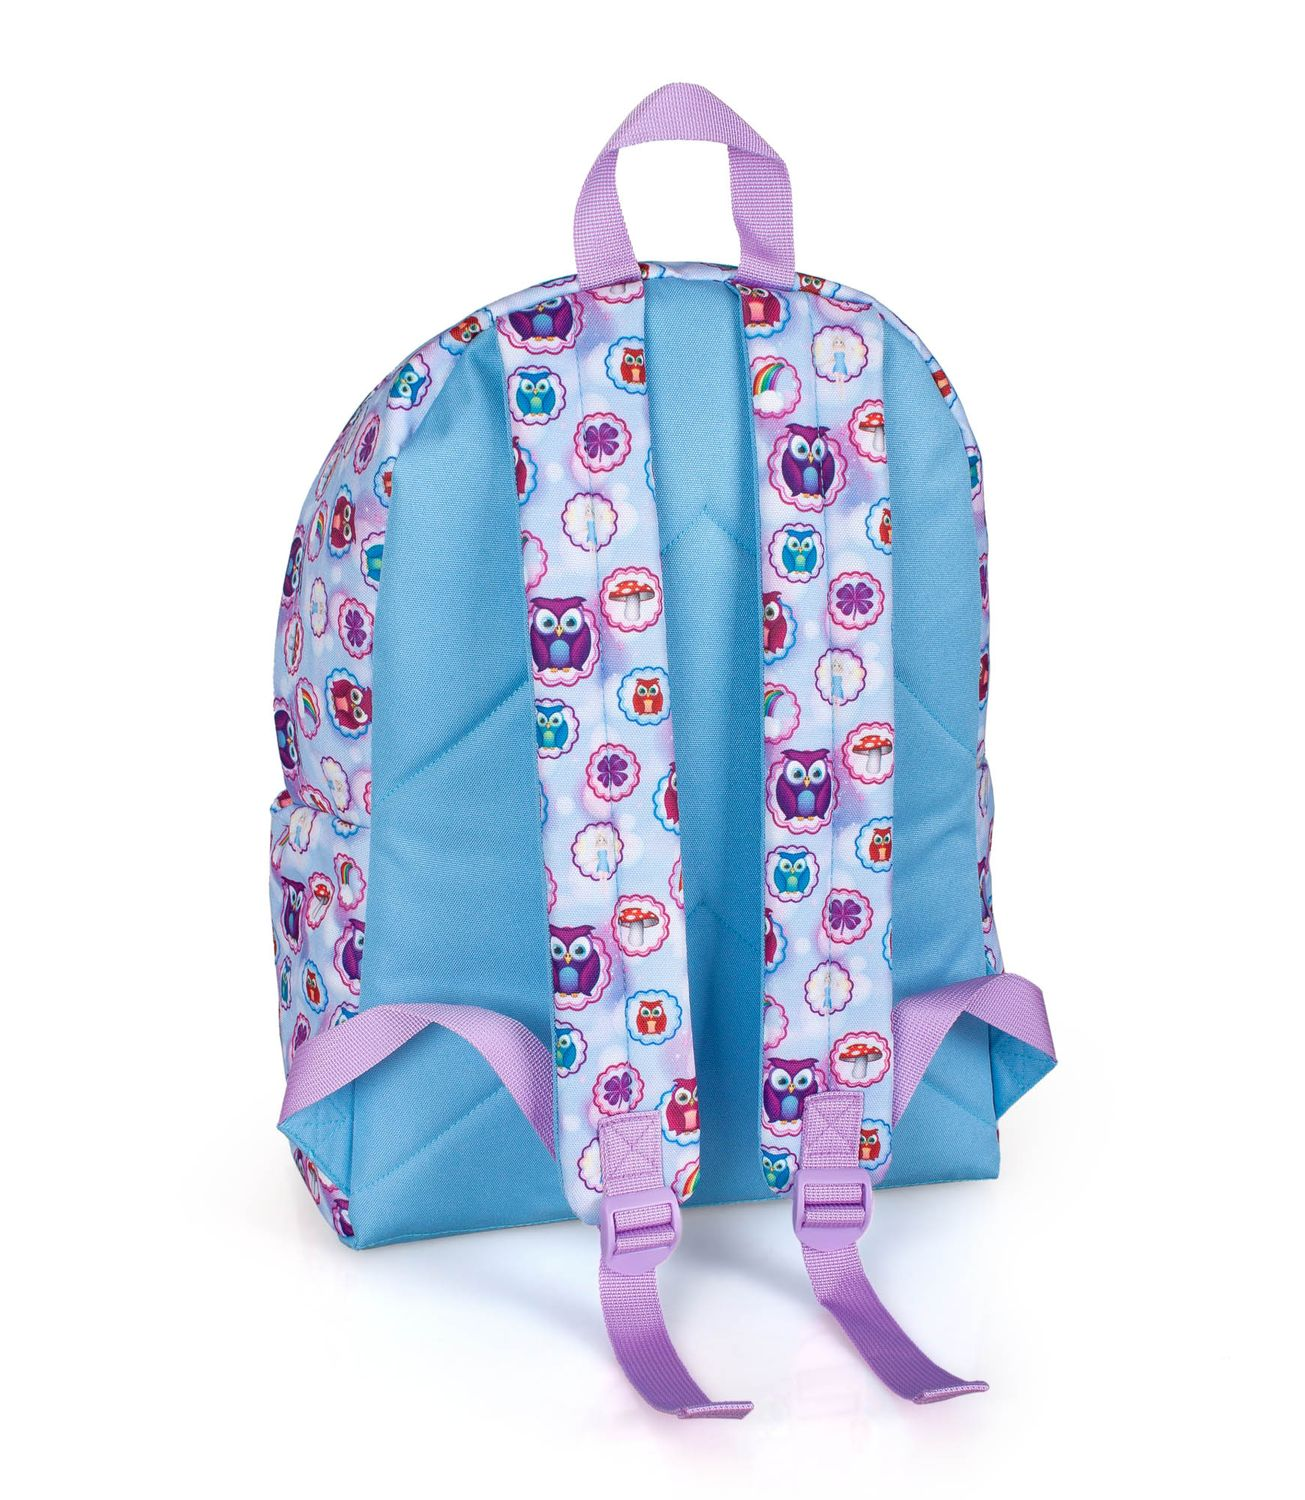 Backpack Rucksack EMOJI Official PINK OWLS – image 2